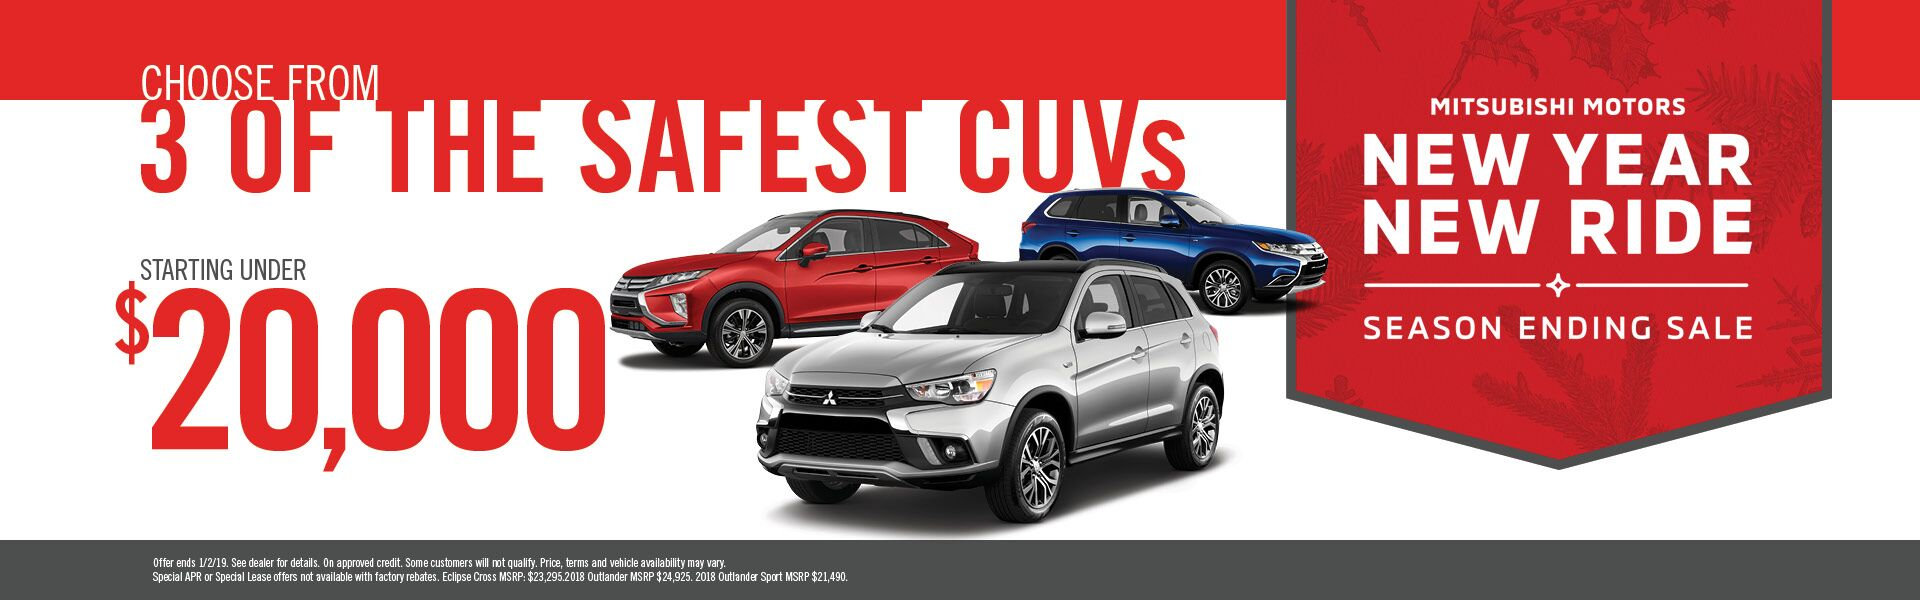 3 of the Safest CUVs-2